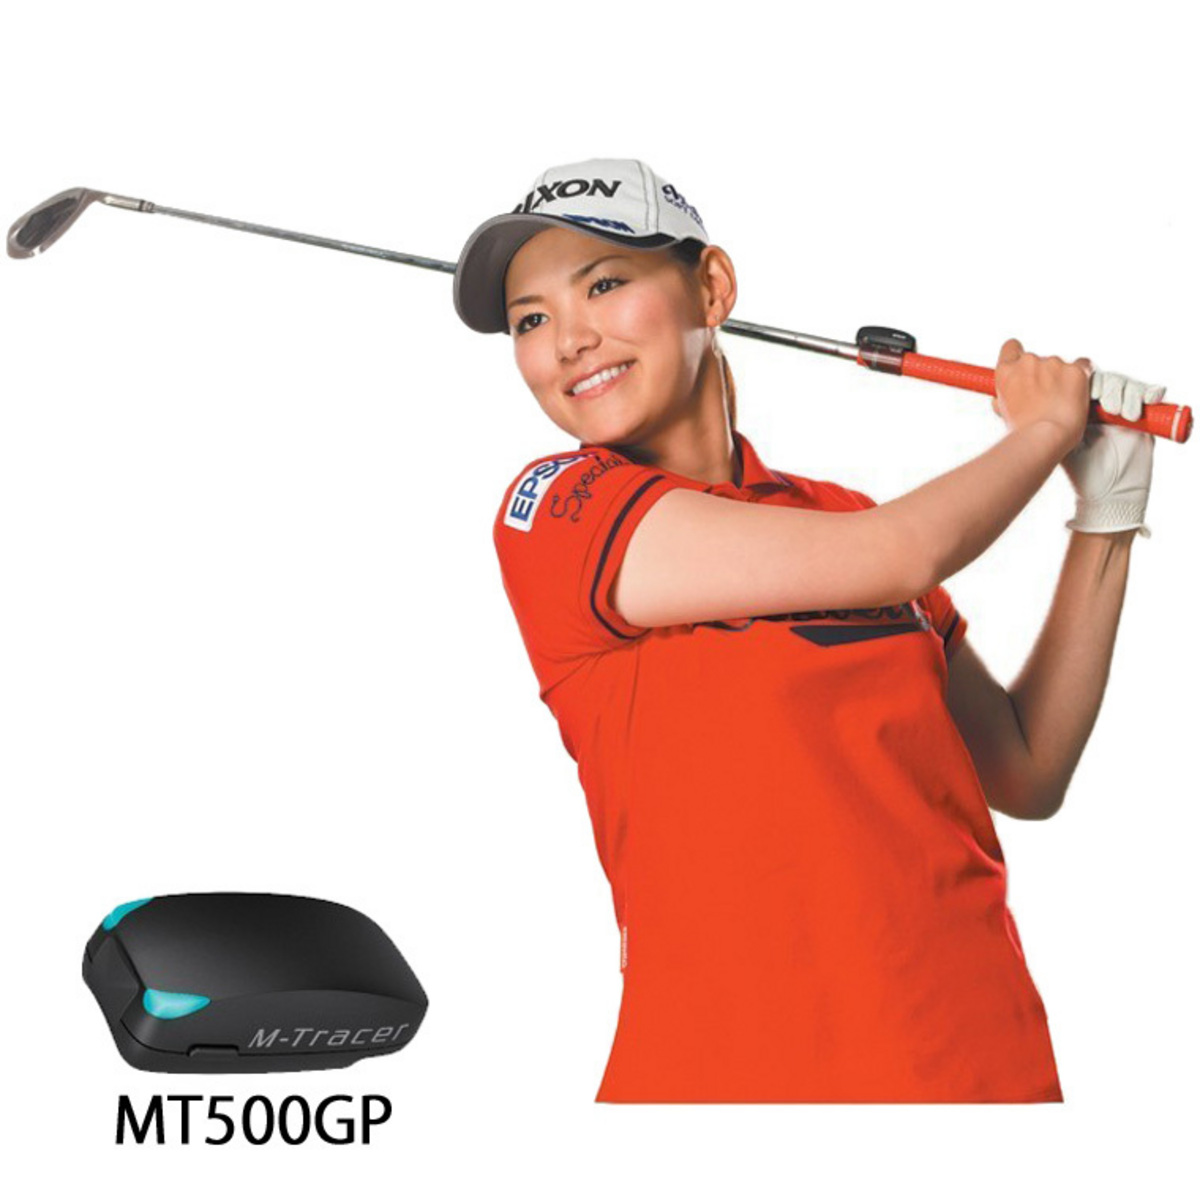 M-Tracer For Golf MT500GP